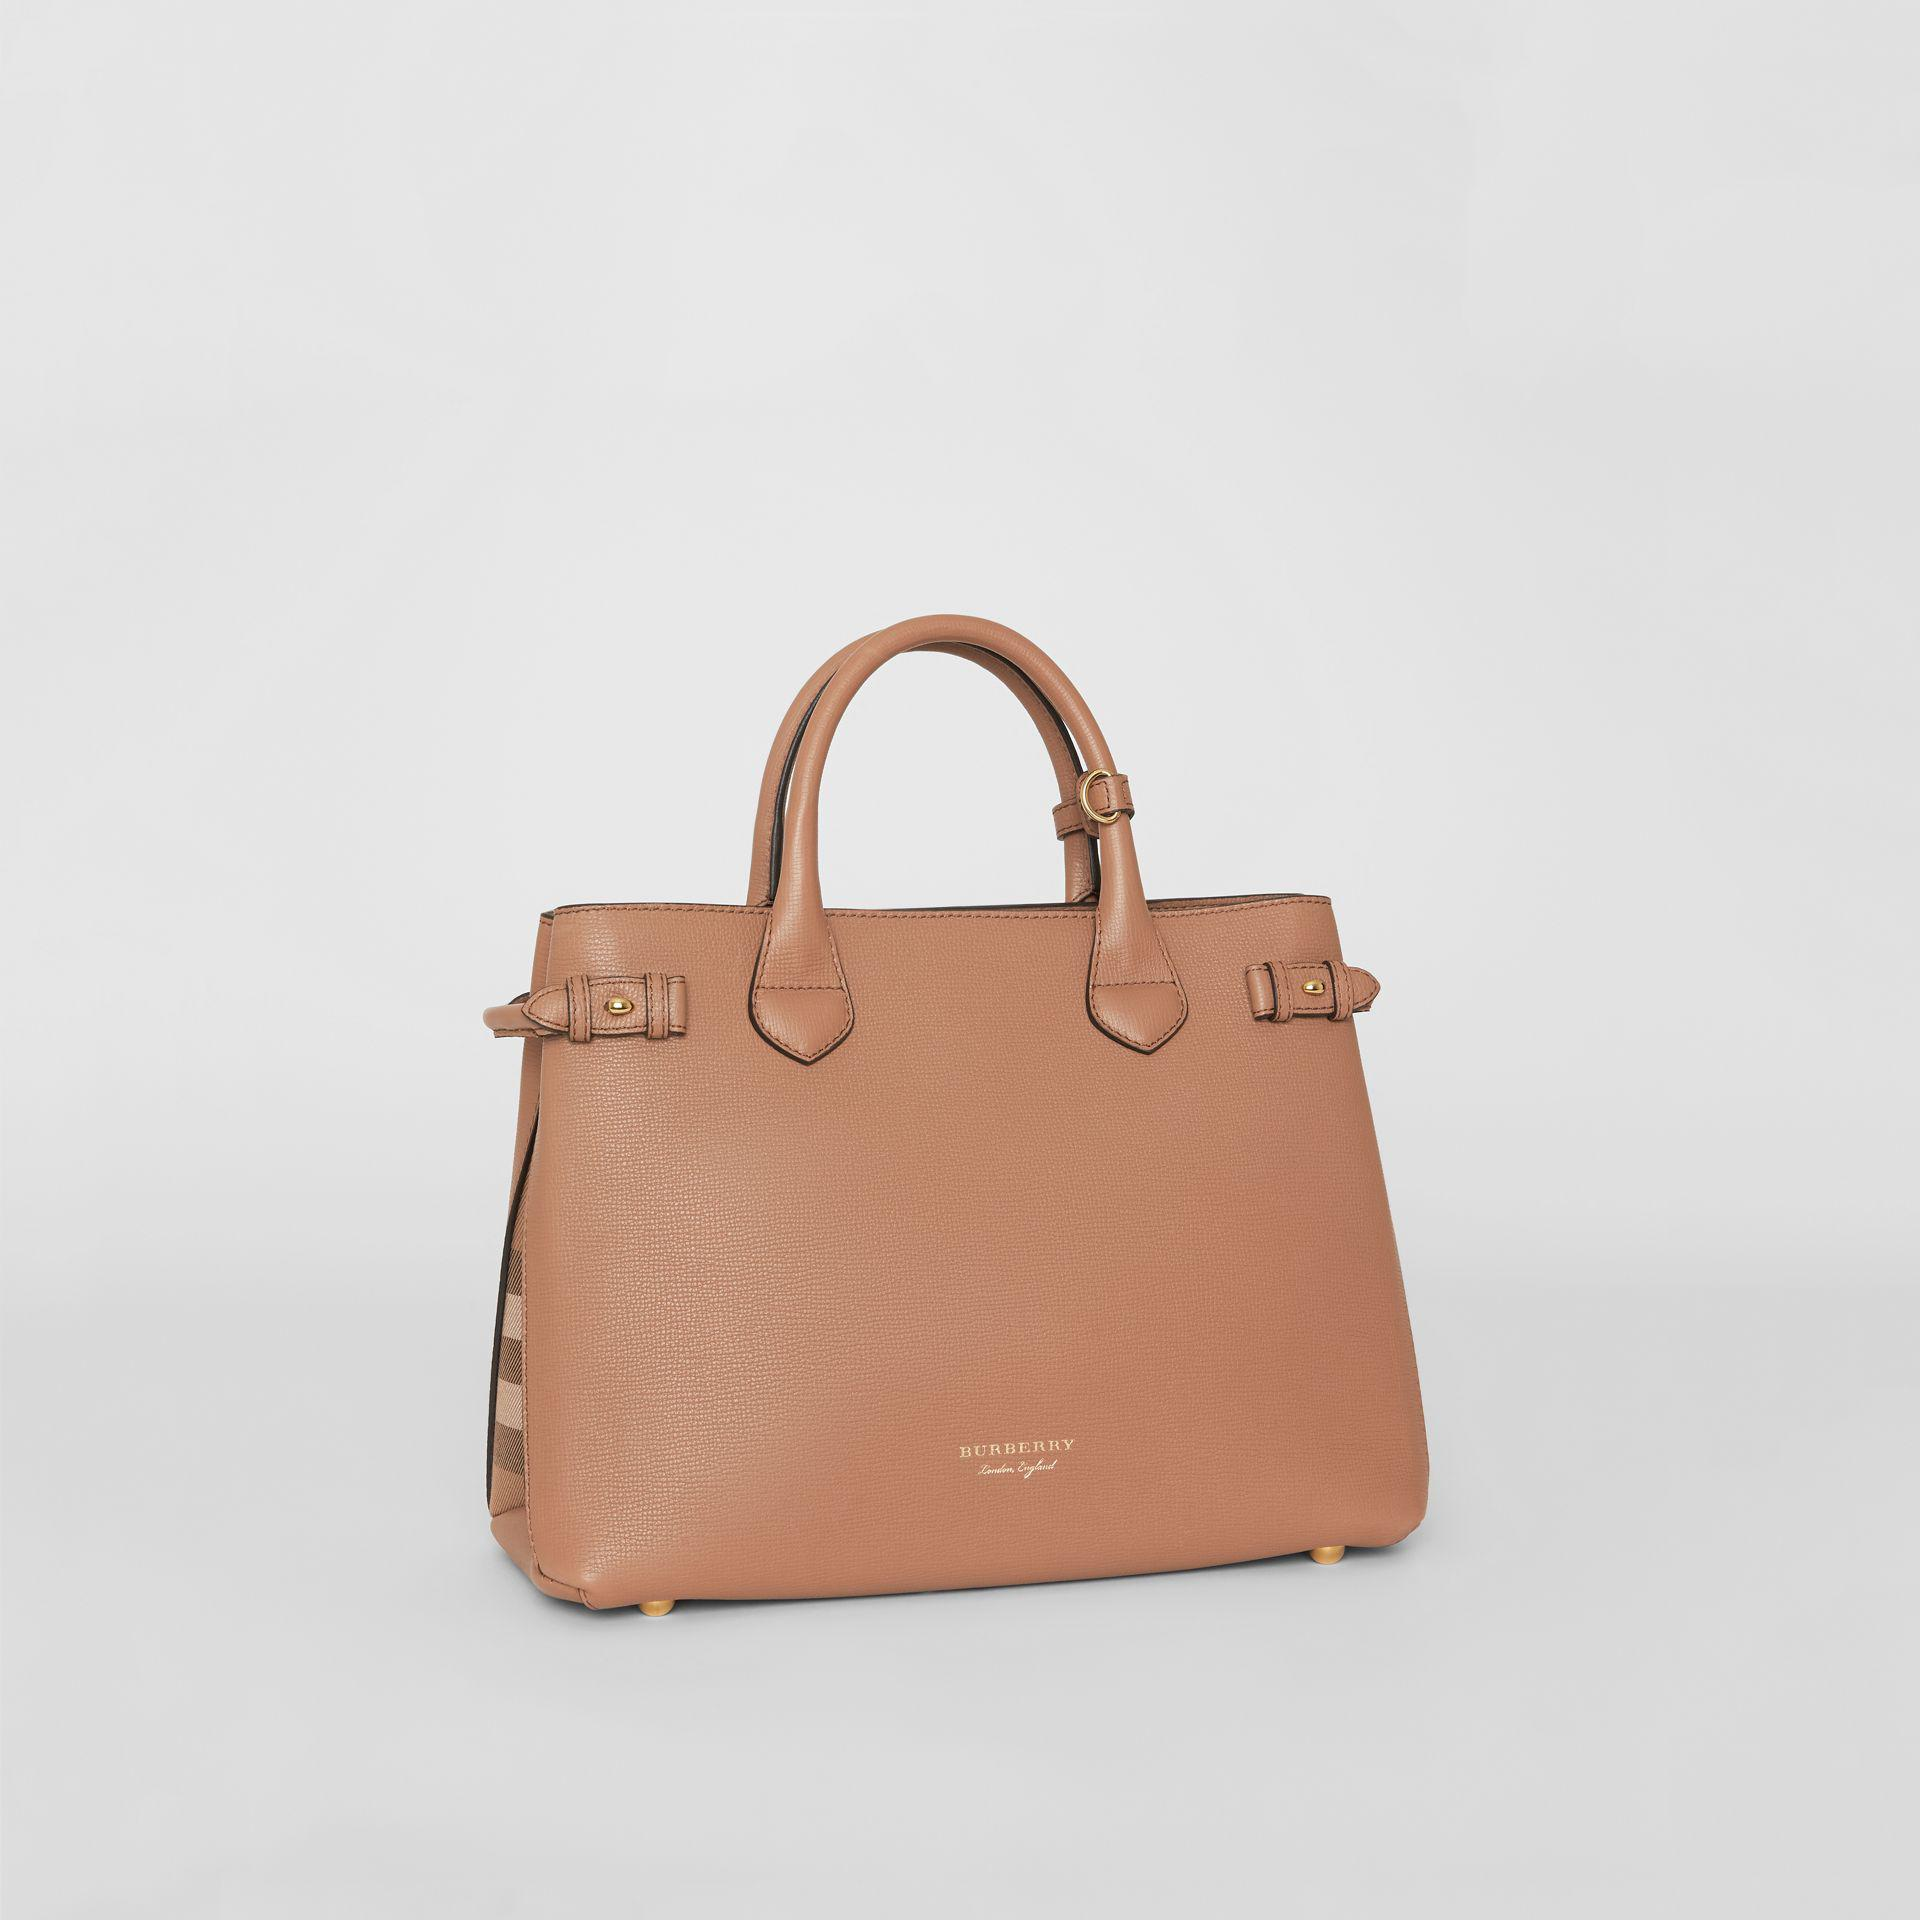 0a9f36c611b0 Burberry The Medium Banner In Leather And House Check Dark Sand - Lyst